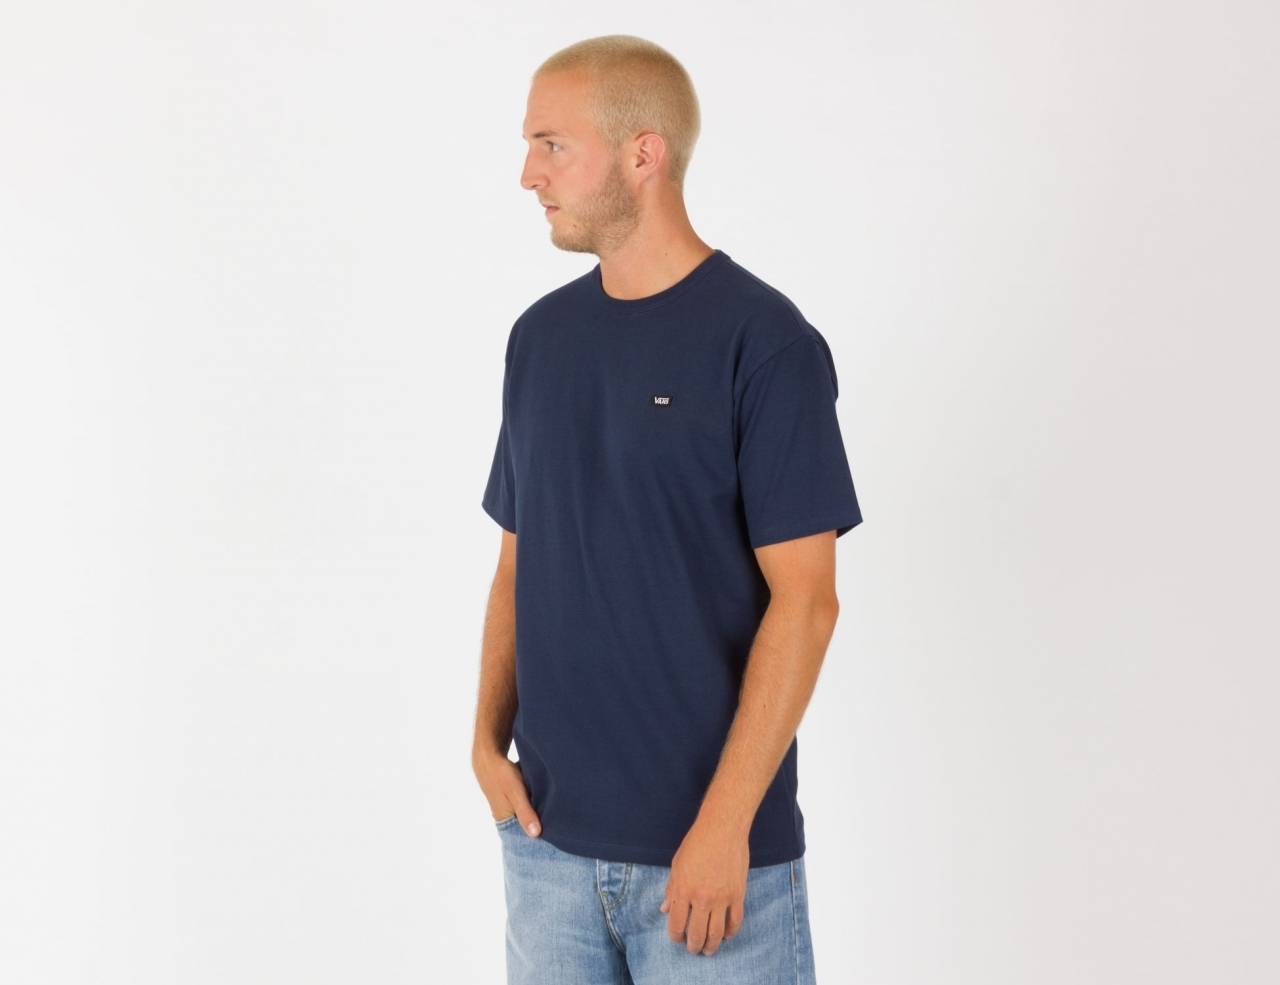 VANS Off The Wall Classic T-Shirt - Dress Blues